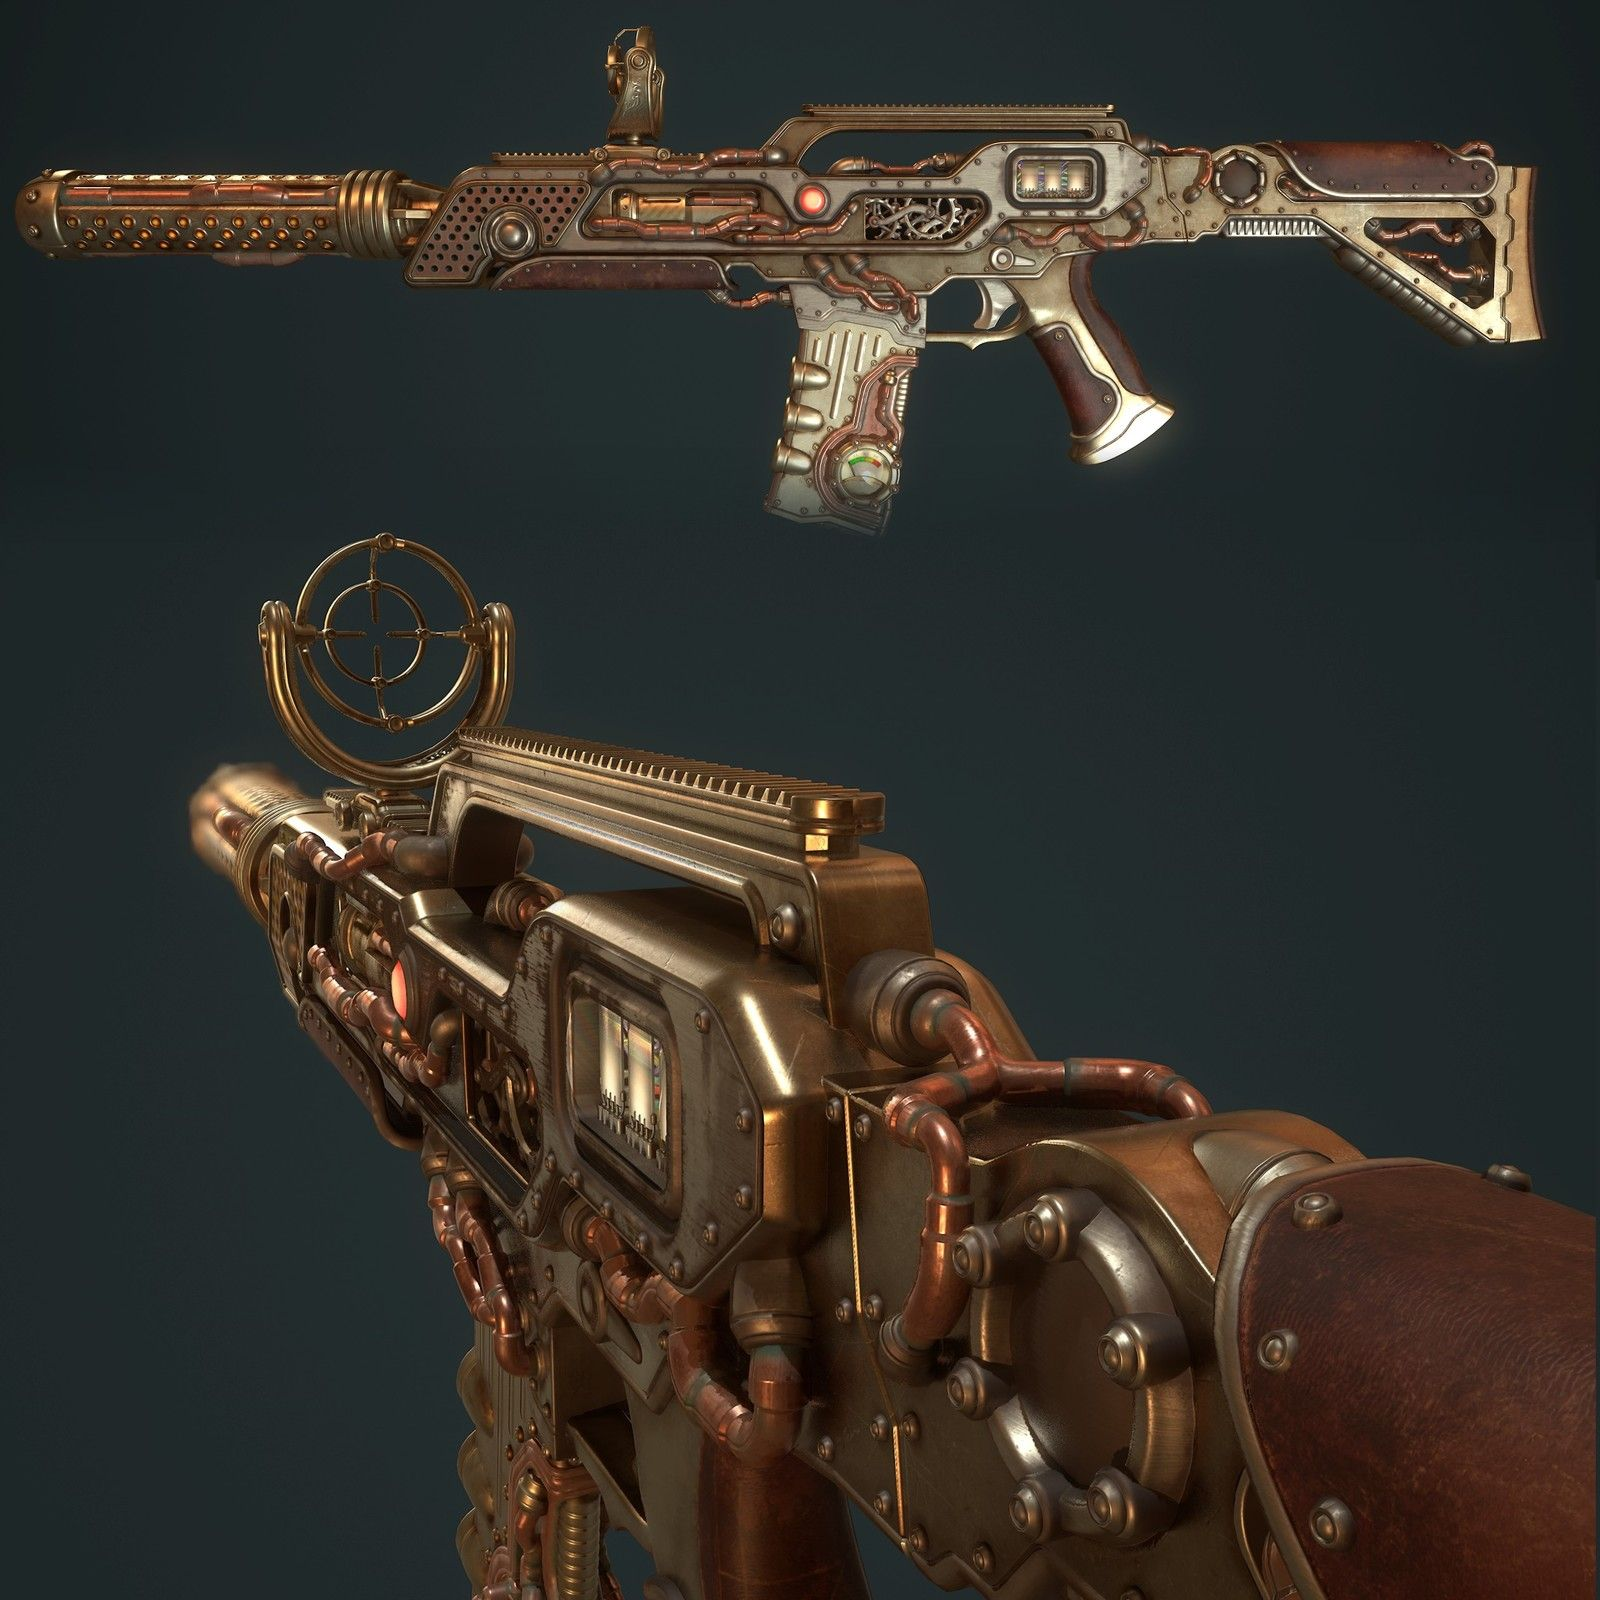 steampunkdieselpunk stylized model from real weapon for